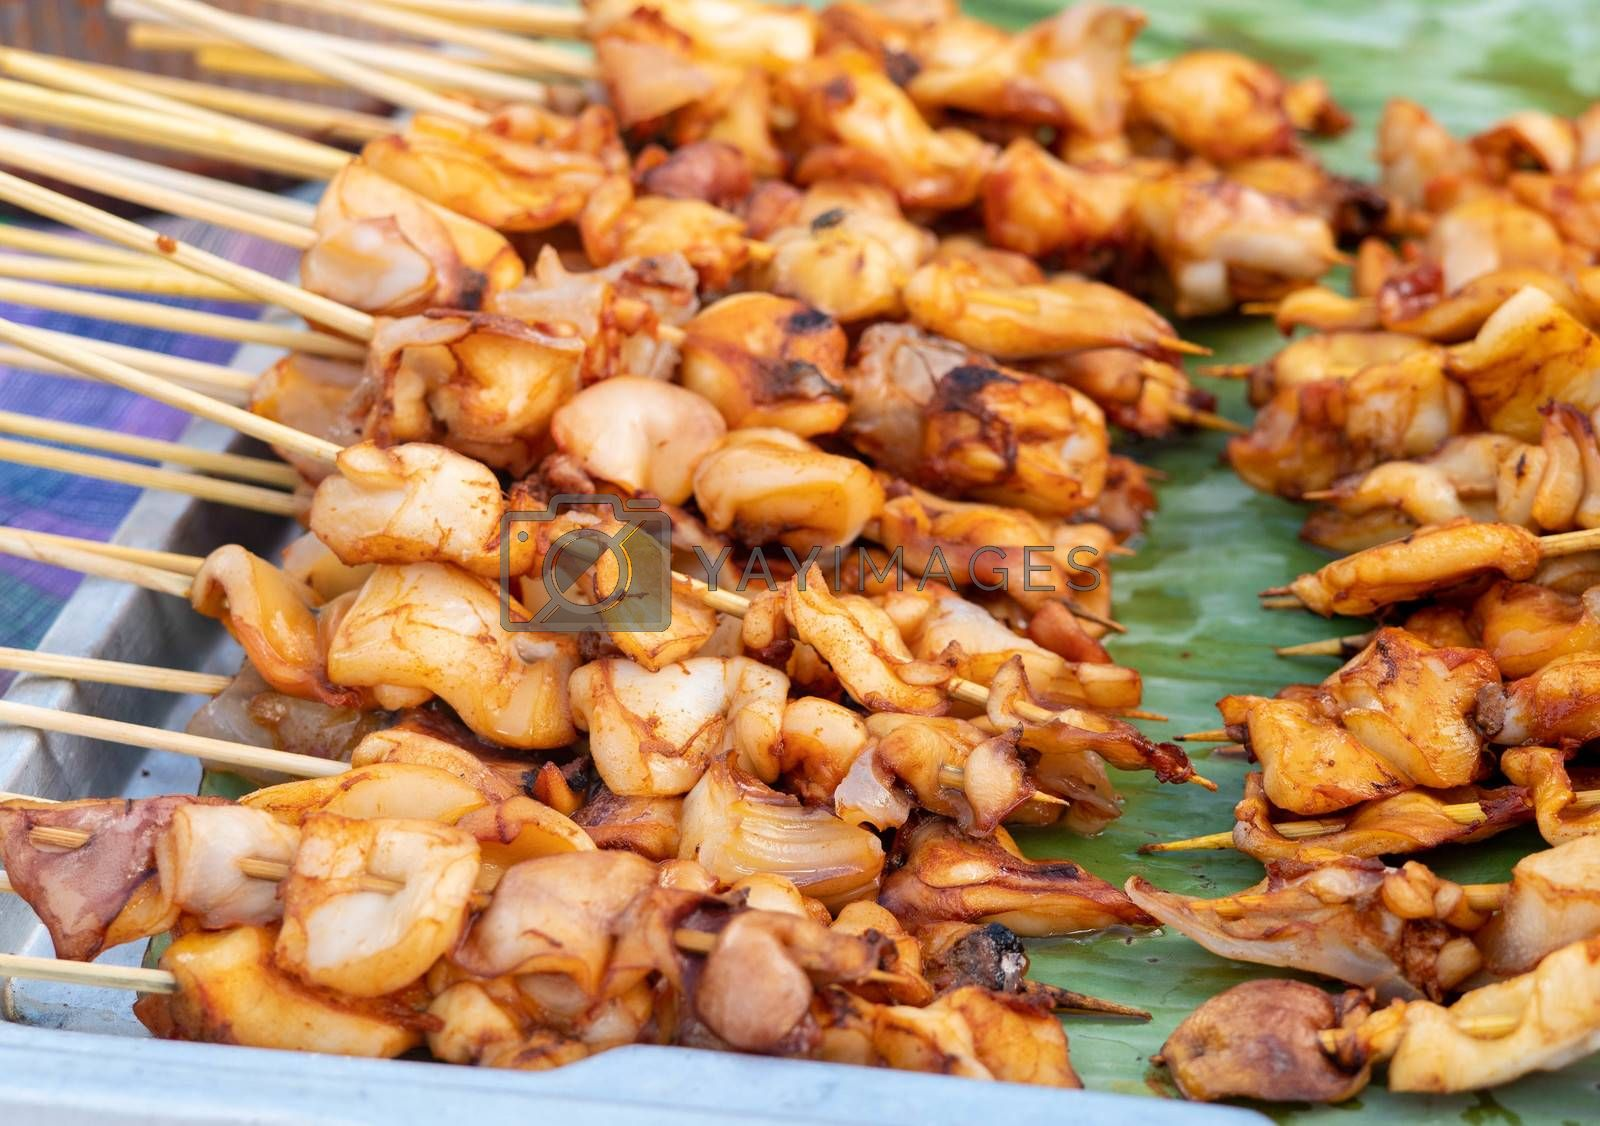 Squid skewers waiting to be grilled in charcoal grill. Thai delicious street food in local market.